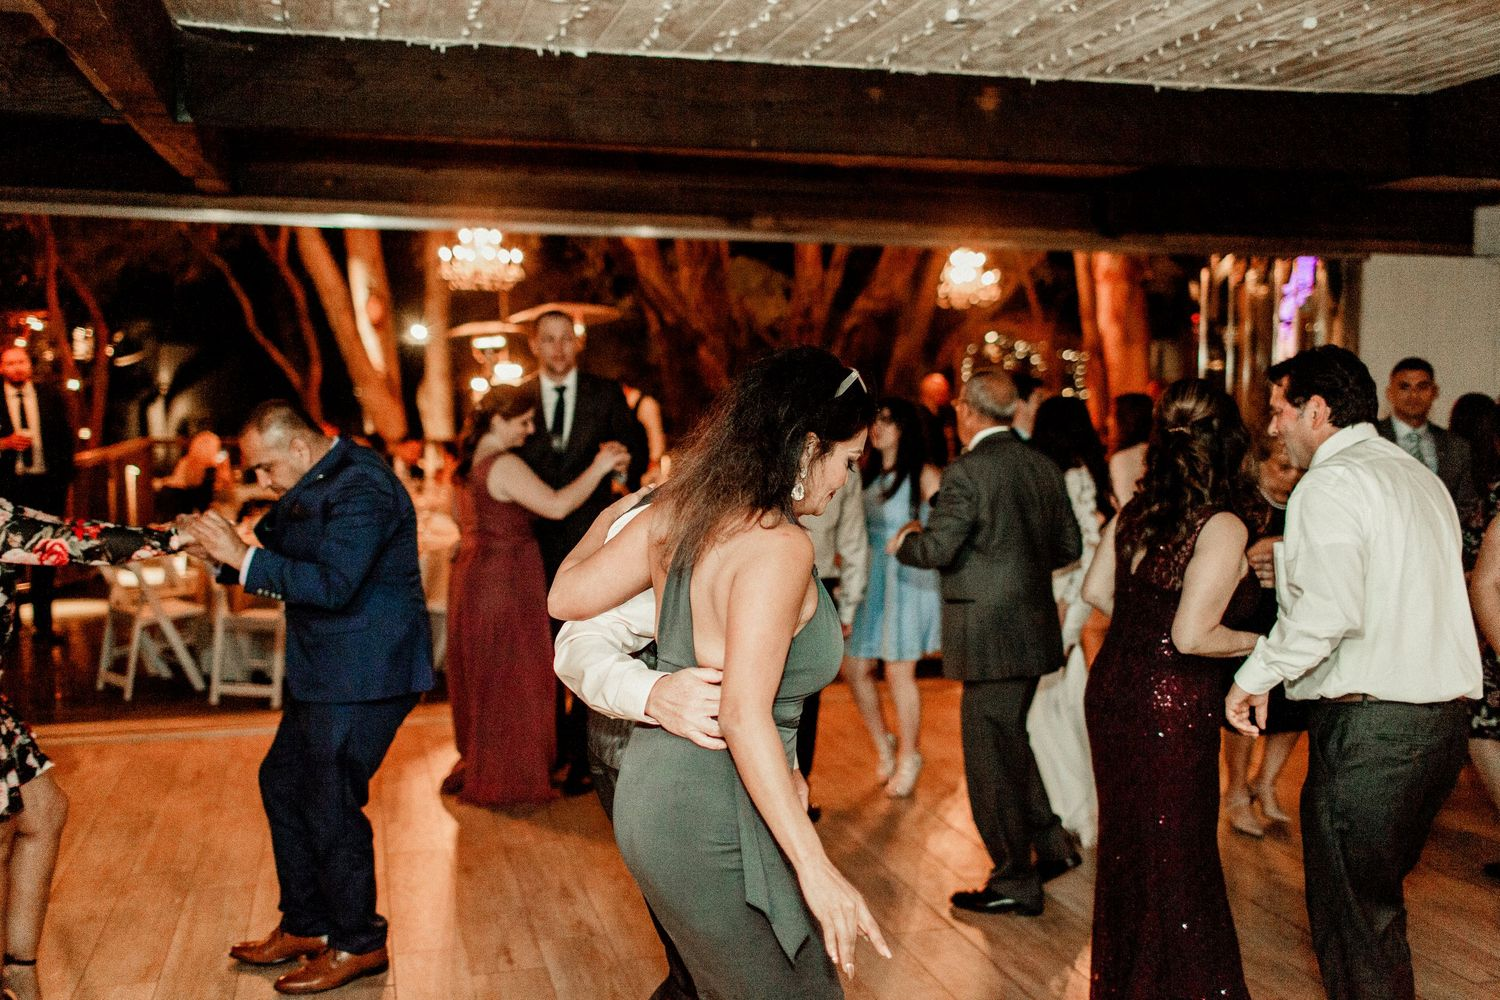 guests dancing on dance floor